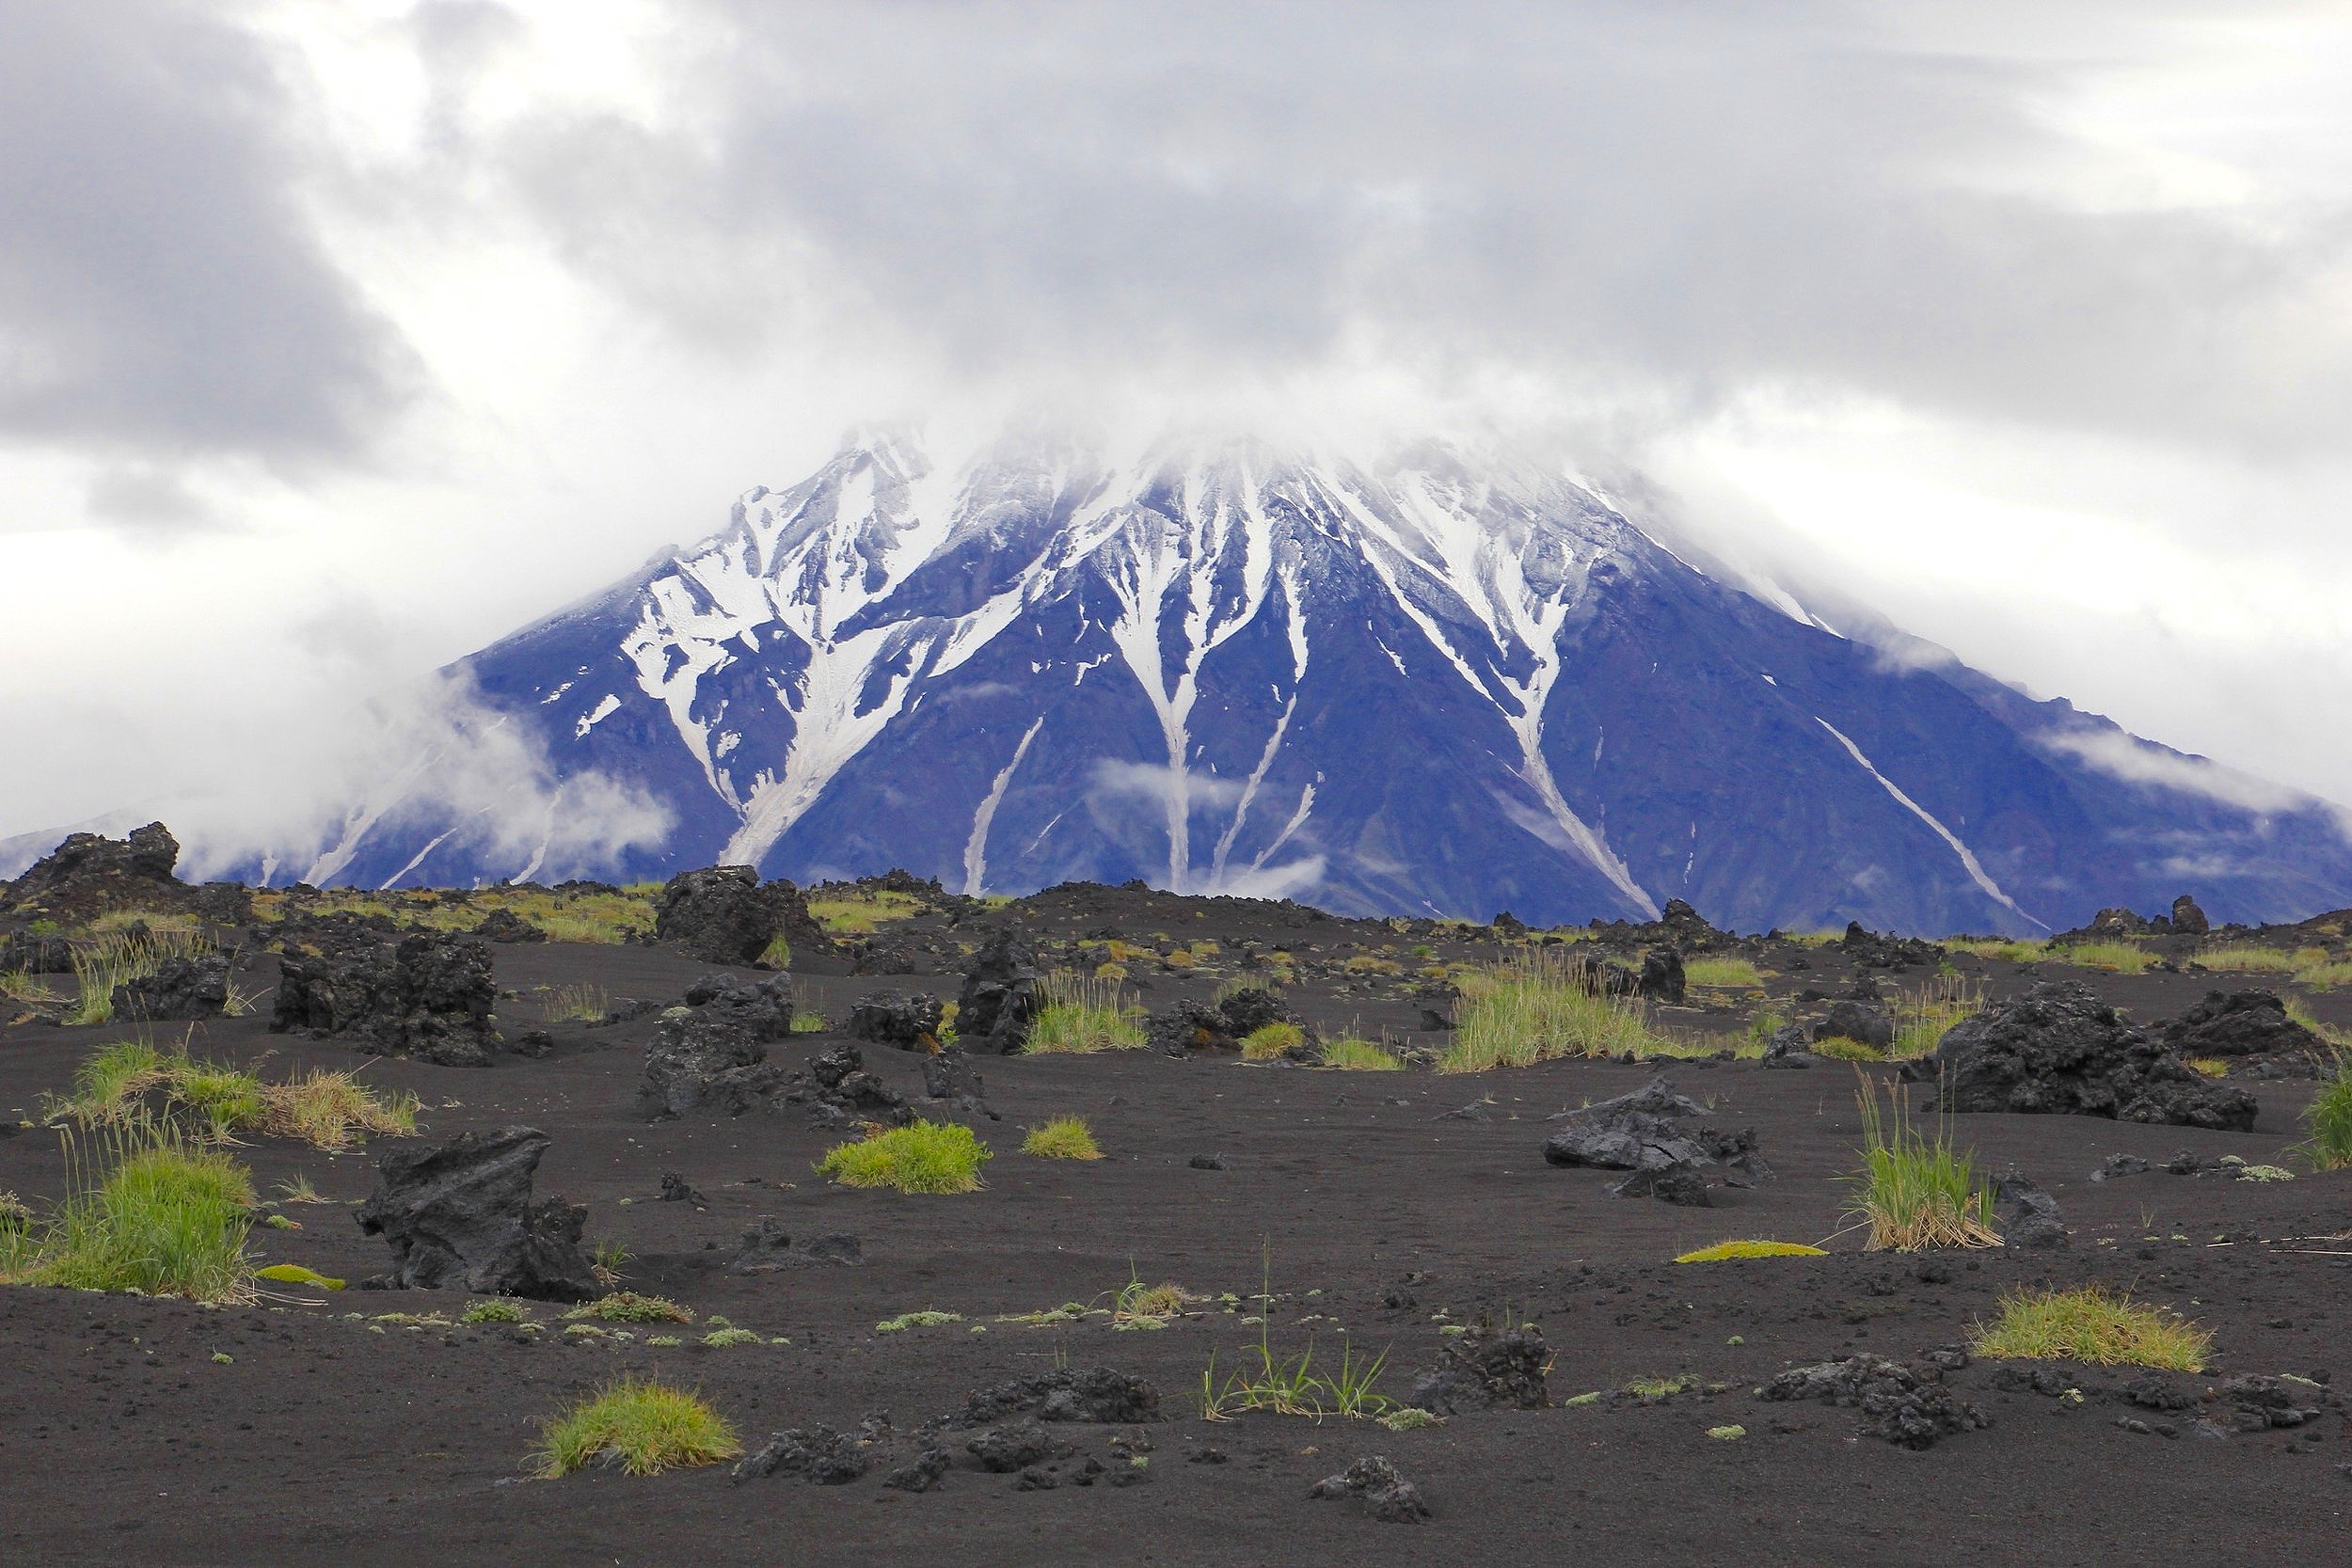 The Udina Volcano and the black soil of the Tolbachik lava fields.